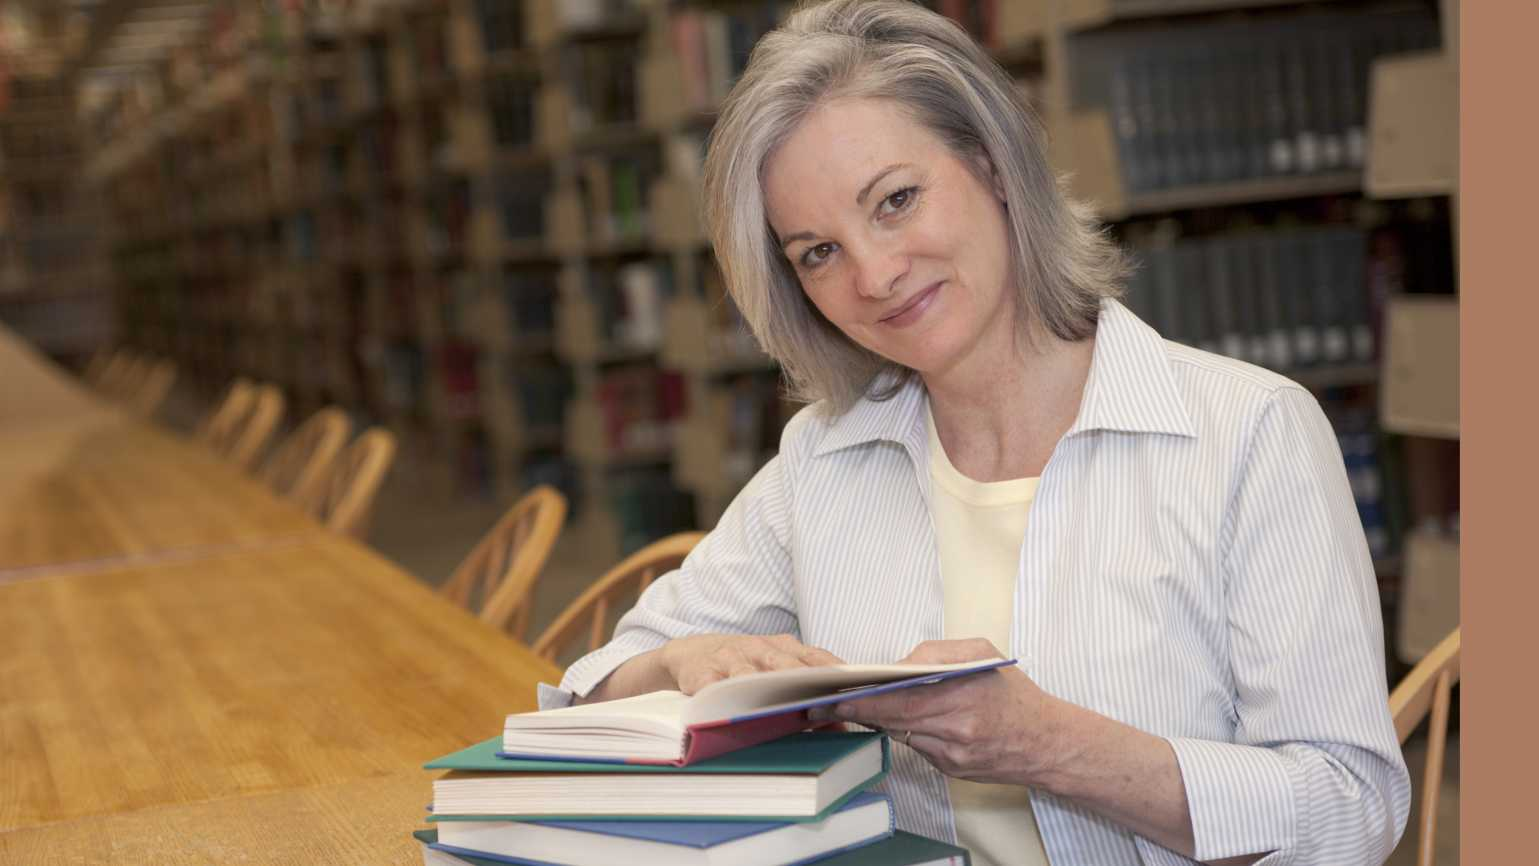 gray haired woman in a library with a stack of books